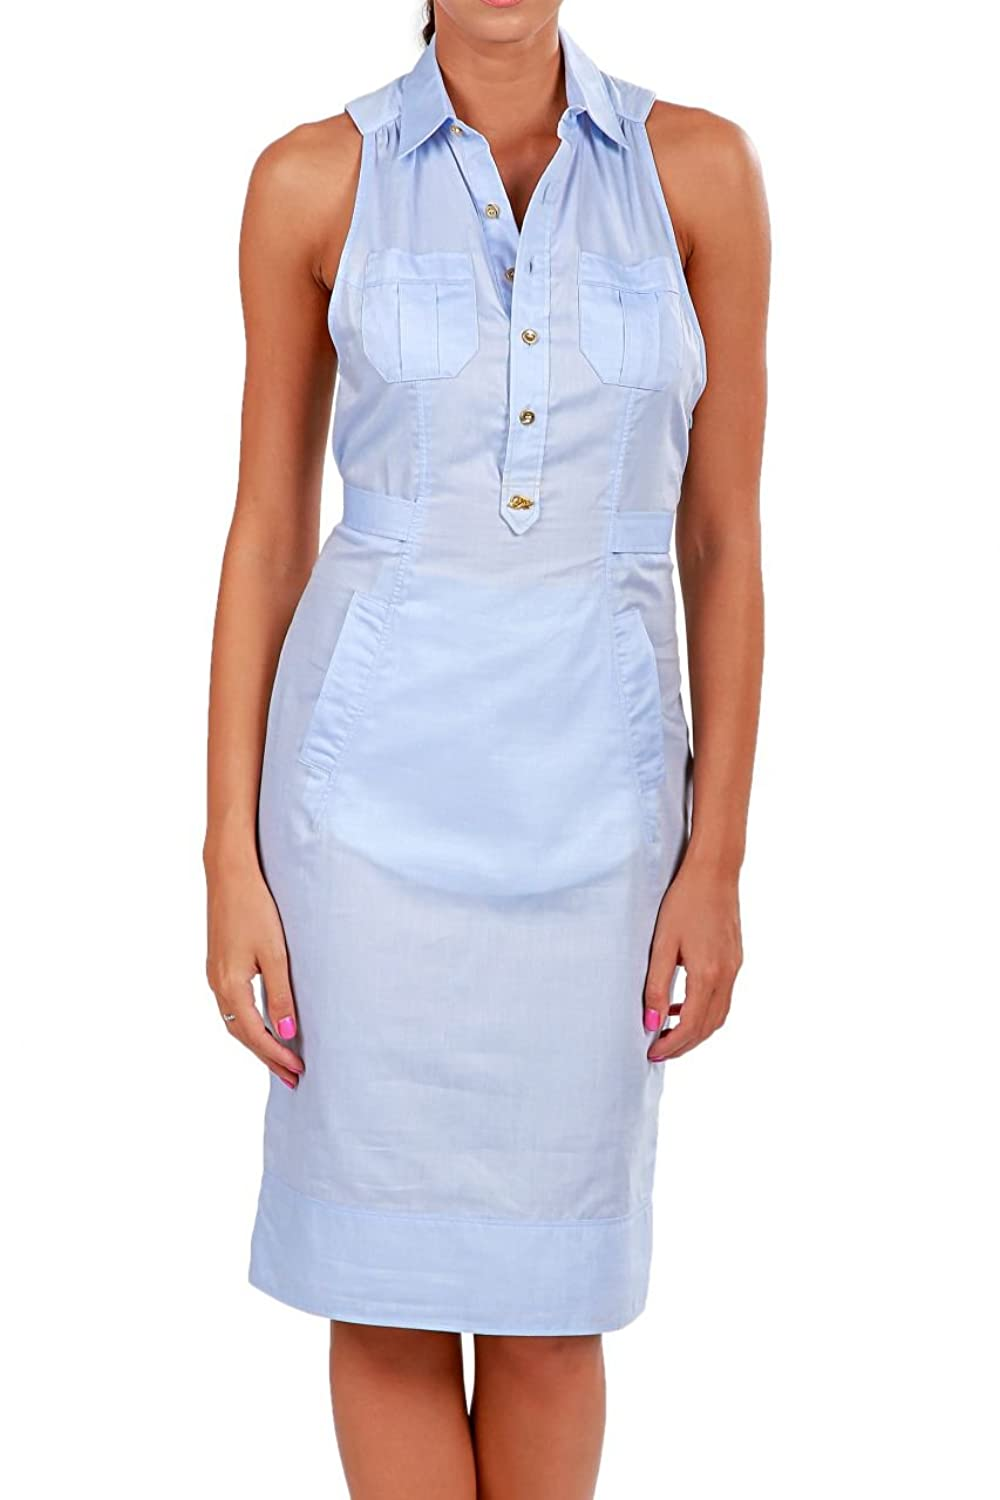 Dsquared2 Shirt Dress , Color: Light Blue